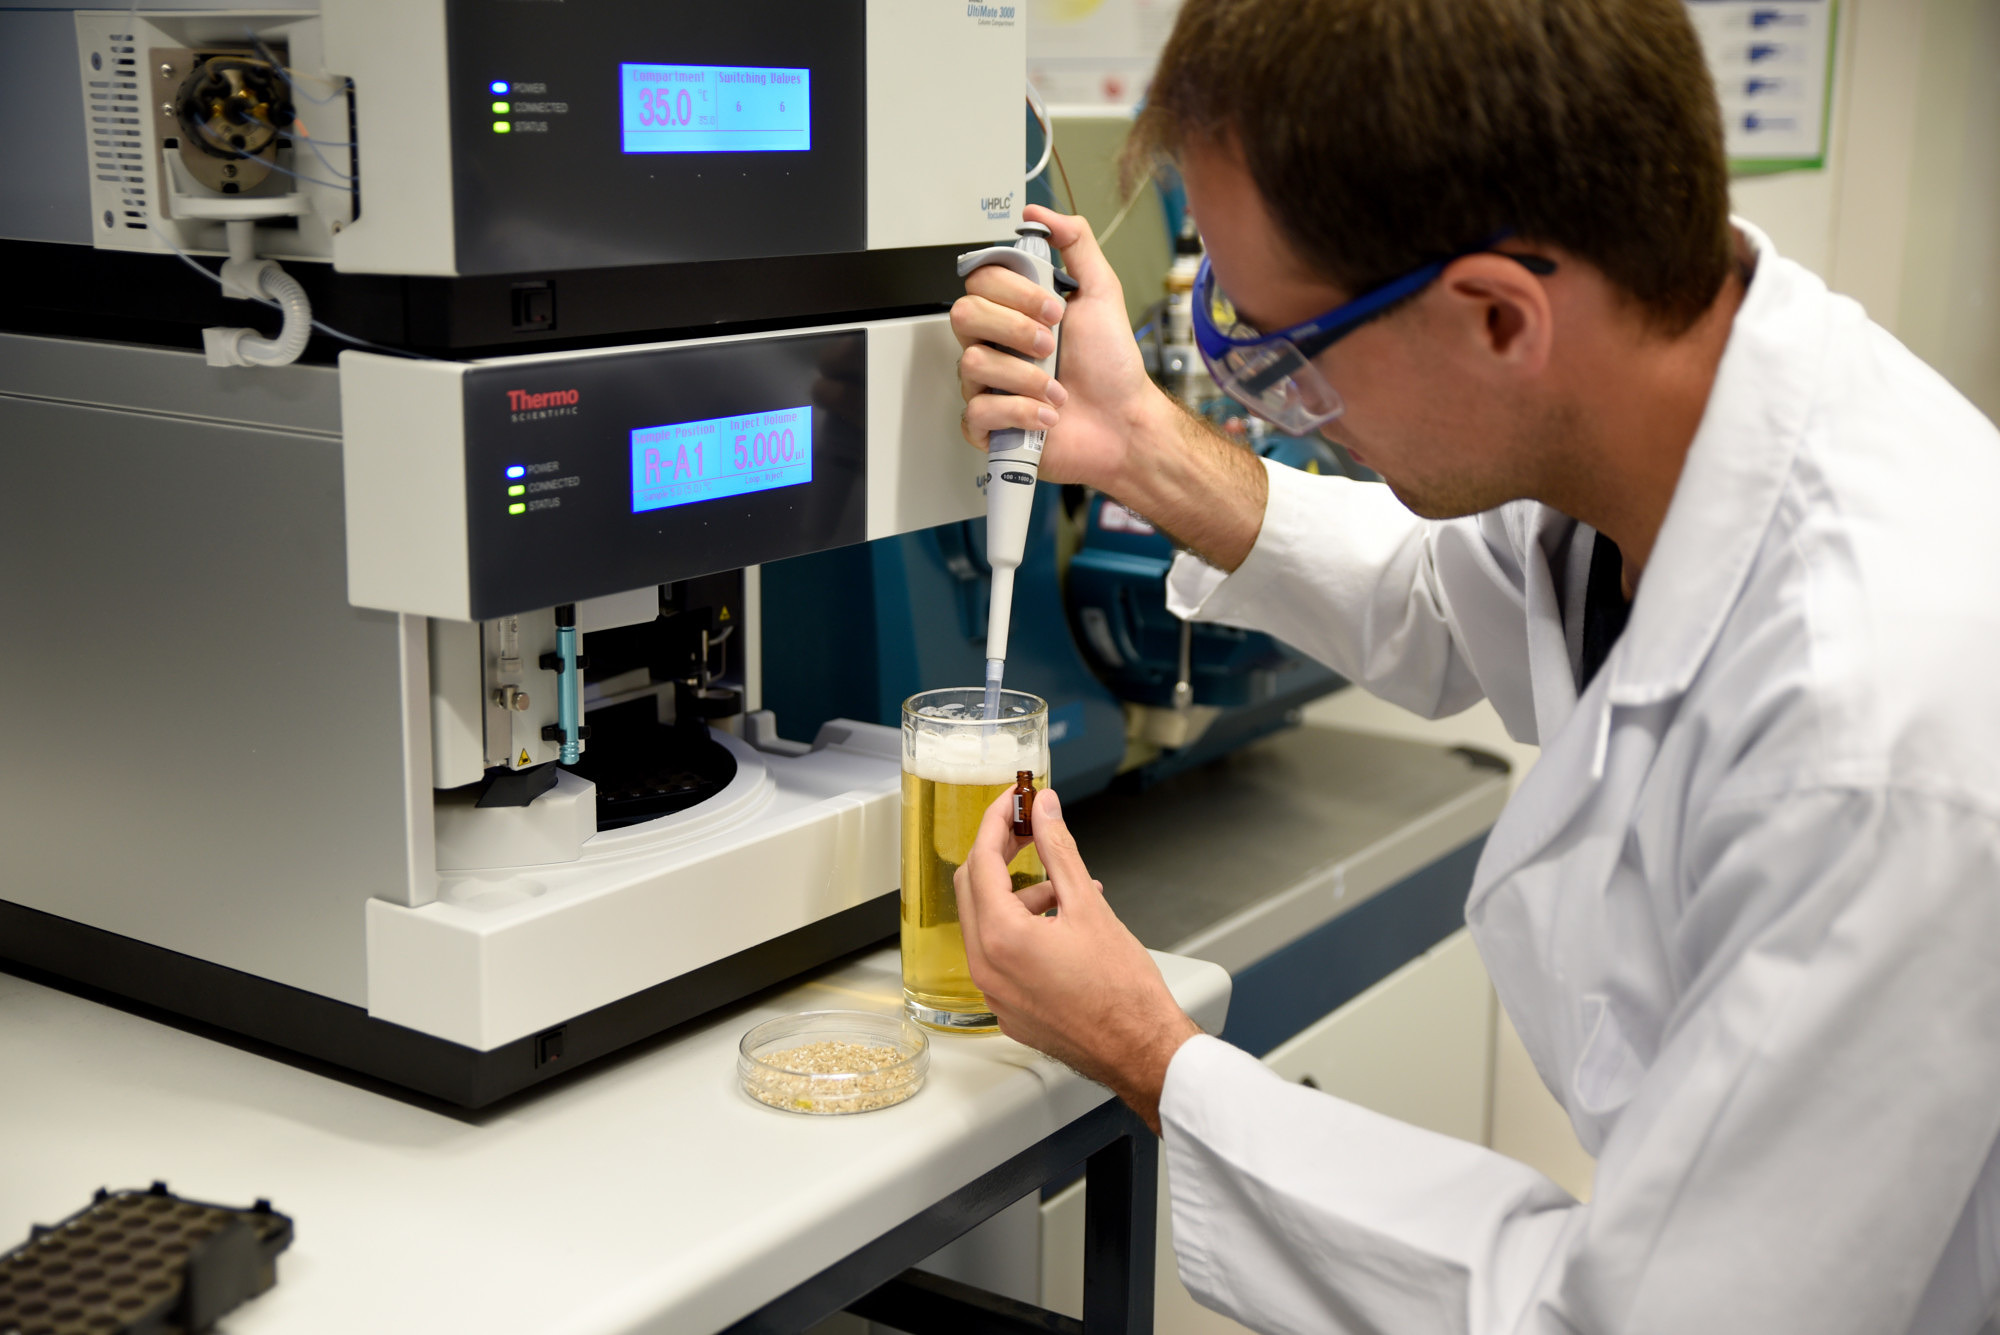 FAU-based researcher Thomas Sommer preparing a sample of beer. After processing, the level of hordenine in the sample is determined using high-performance liquid chromatography and mass spectrometry. Image: FAU/Katharina Götz)